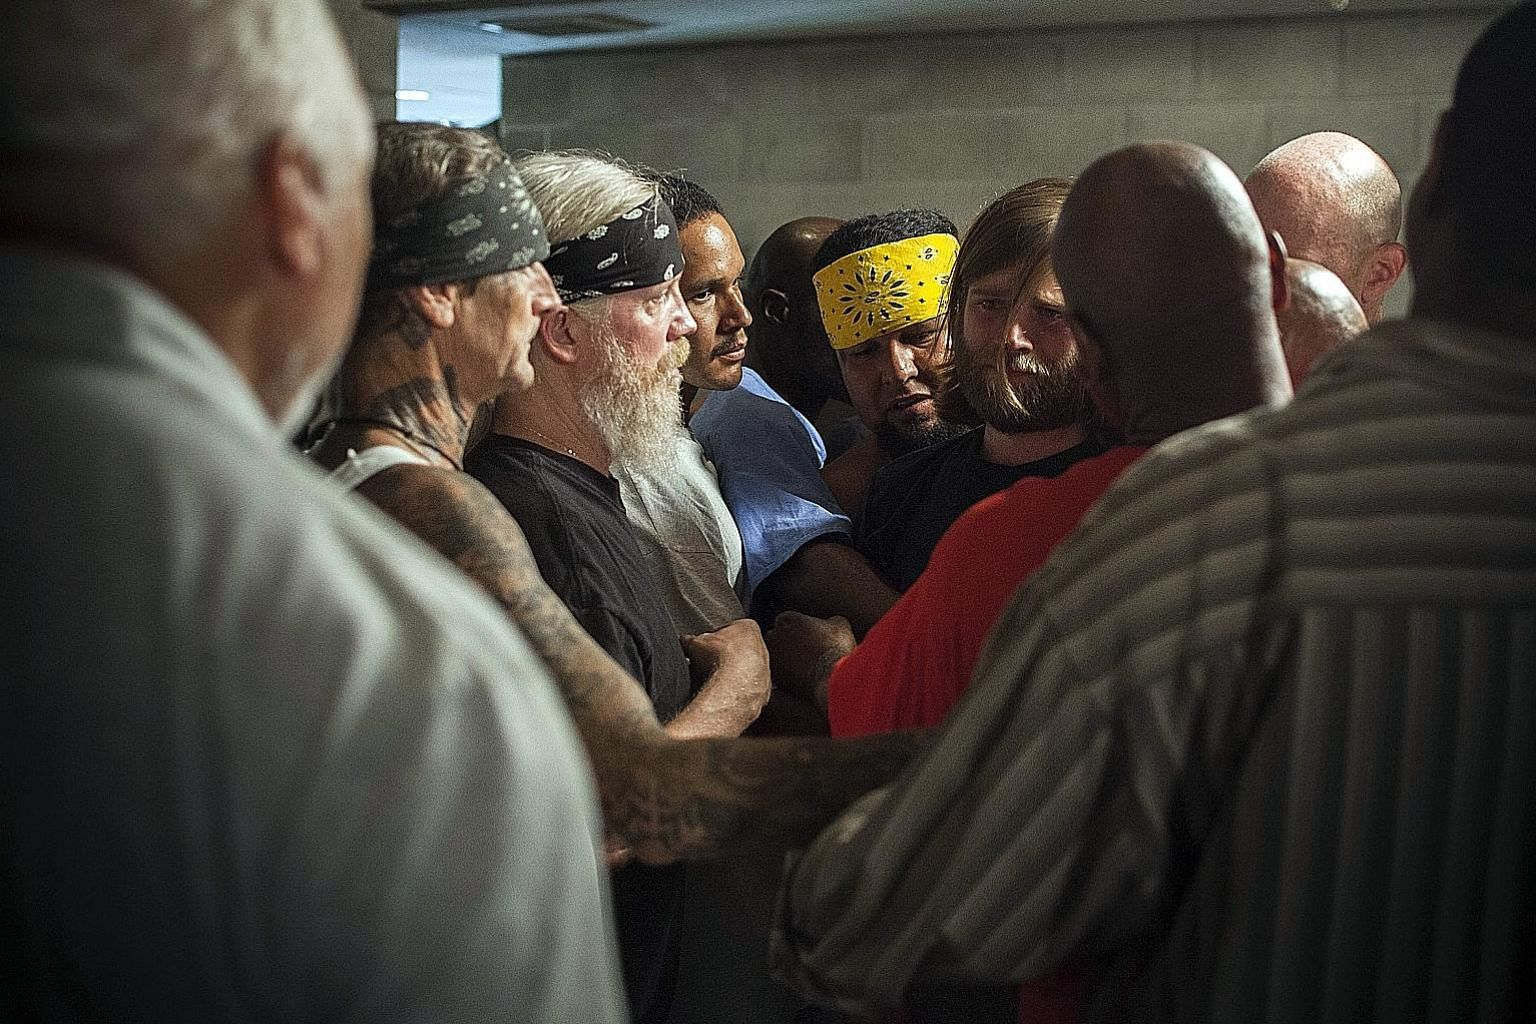 The Work documents a four-day retreat in the Folsom State Prison in California, where inmates cross racial lines that split the prison population into gangs to get therapy.